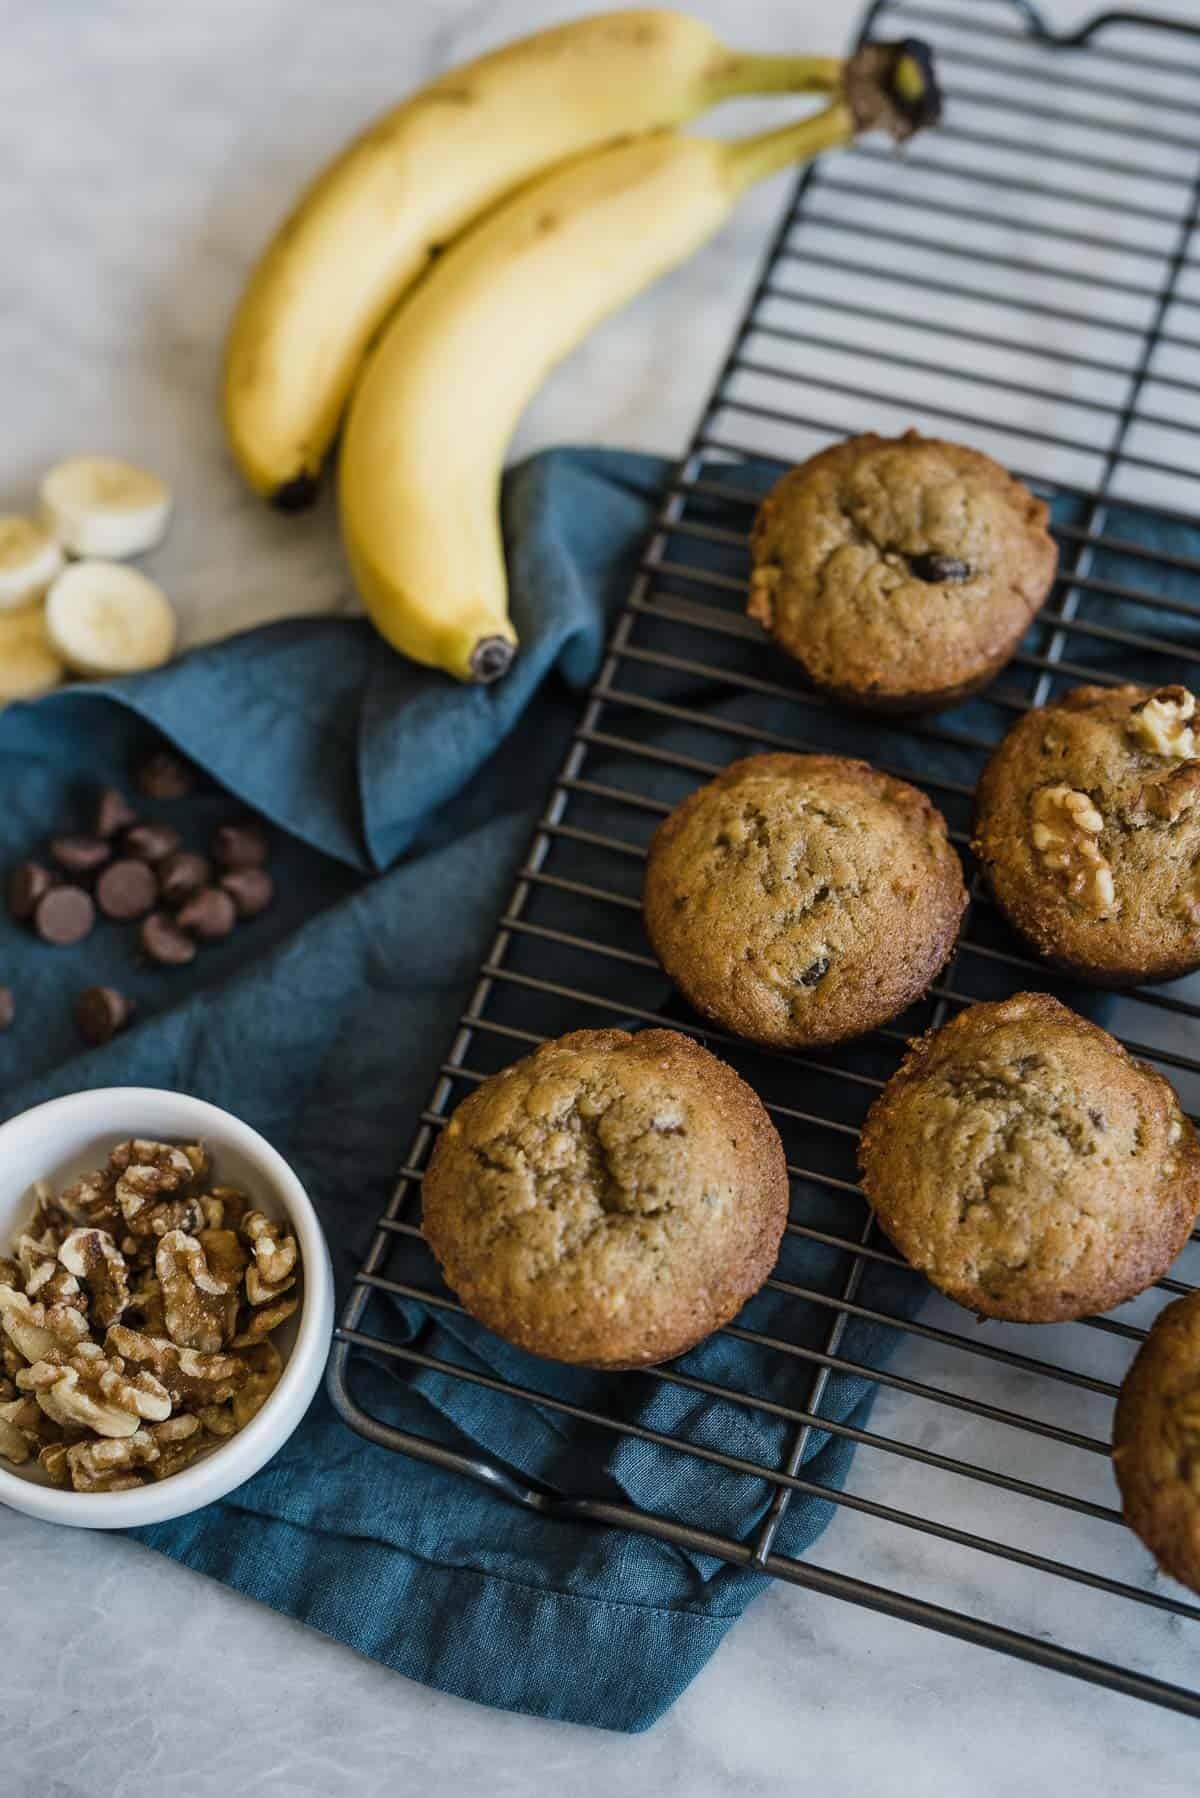 Banana Muffins With Walnuts And Chocolate Chips